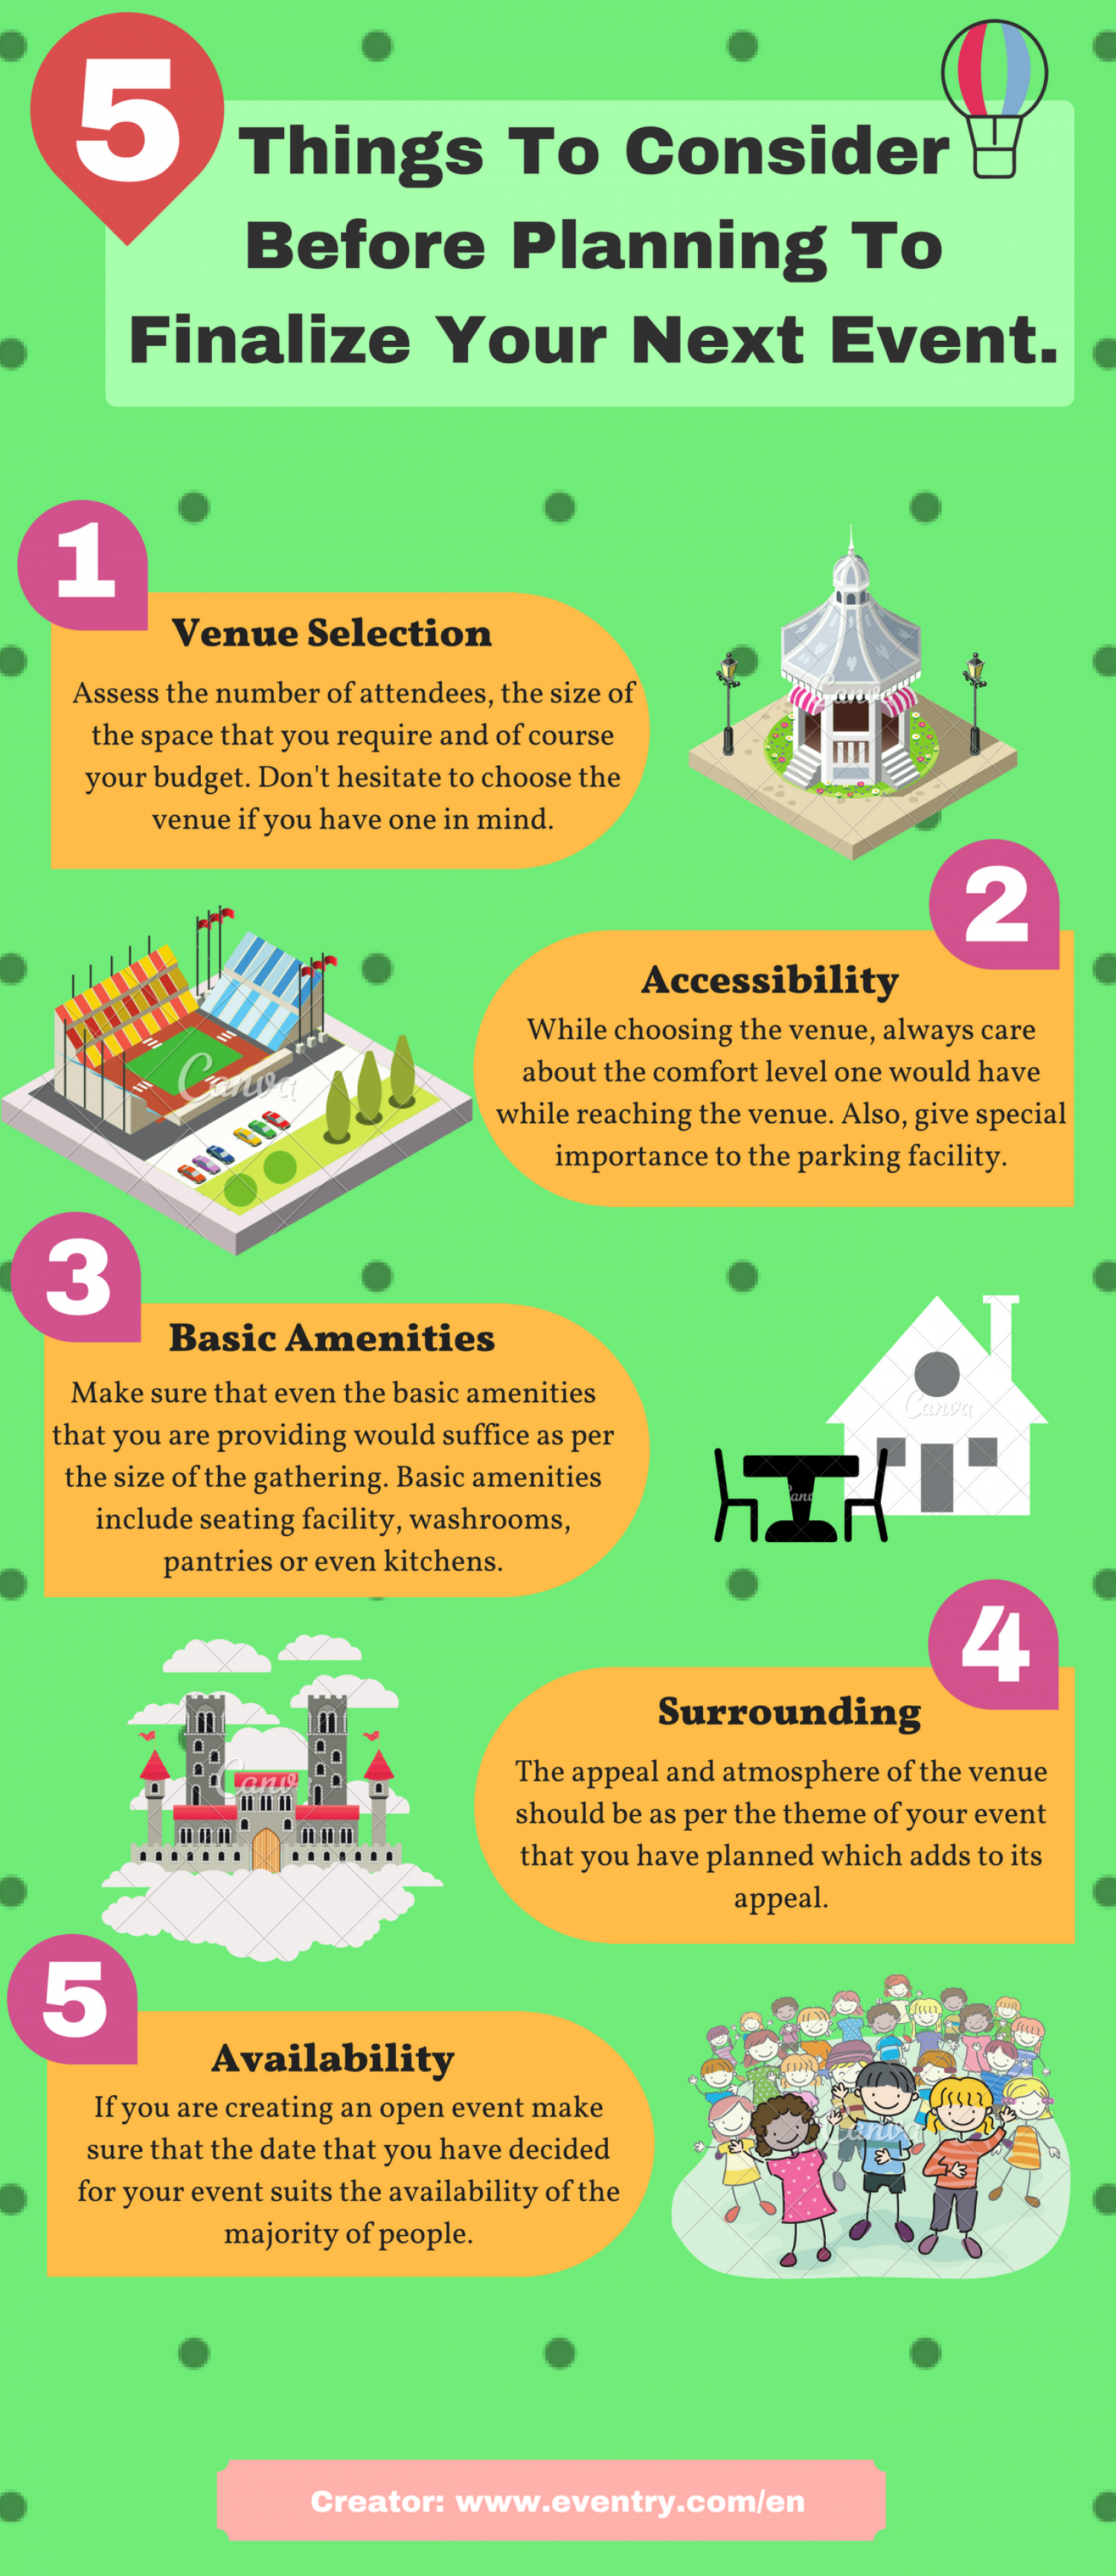 5 Things To Consider Before Planning To Finalize Your Next Event. Infographic